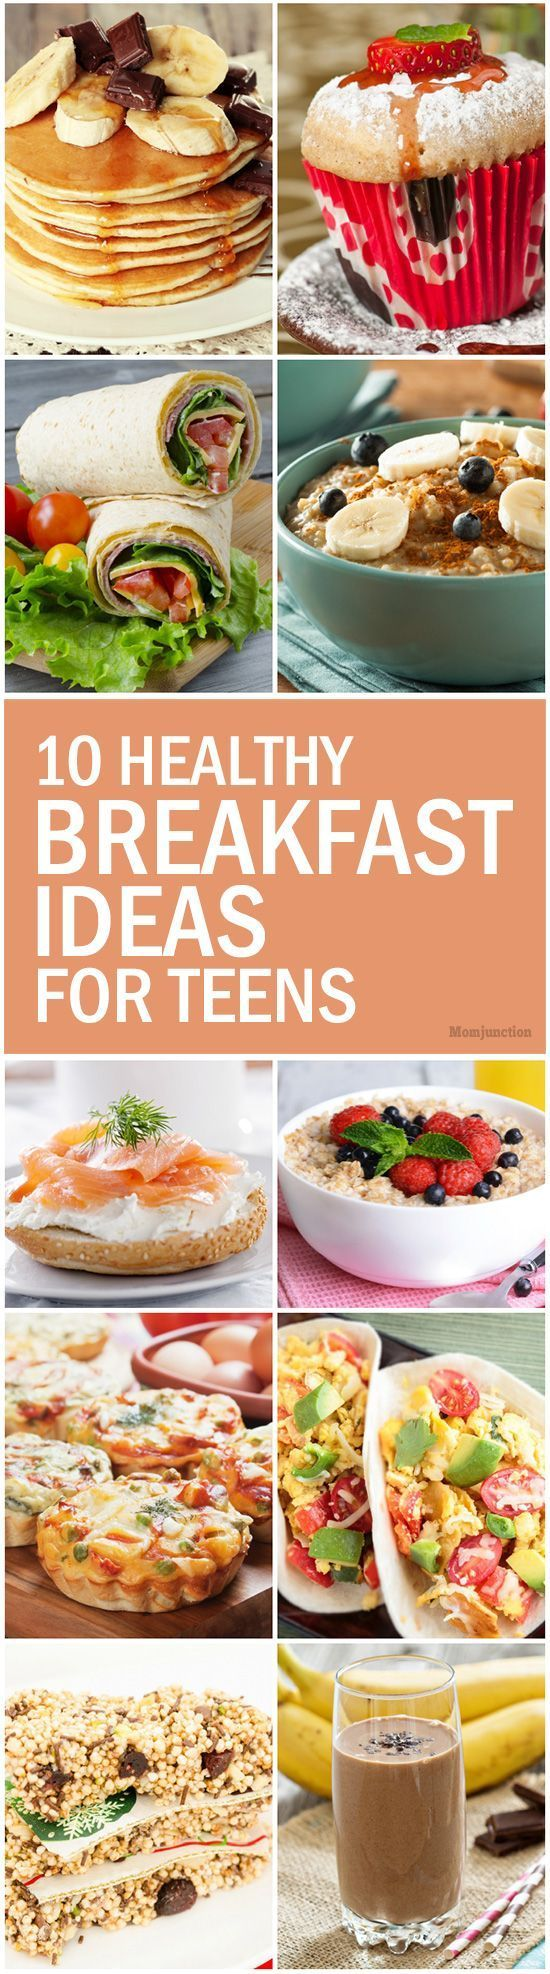 10 Healthy Breakfast Ideas For Teens: Here are ten simple recipes for whipping up the perfect power breakfast for your teen in a jiffy. Go ahead and check them out!